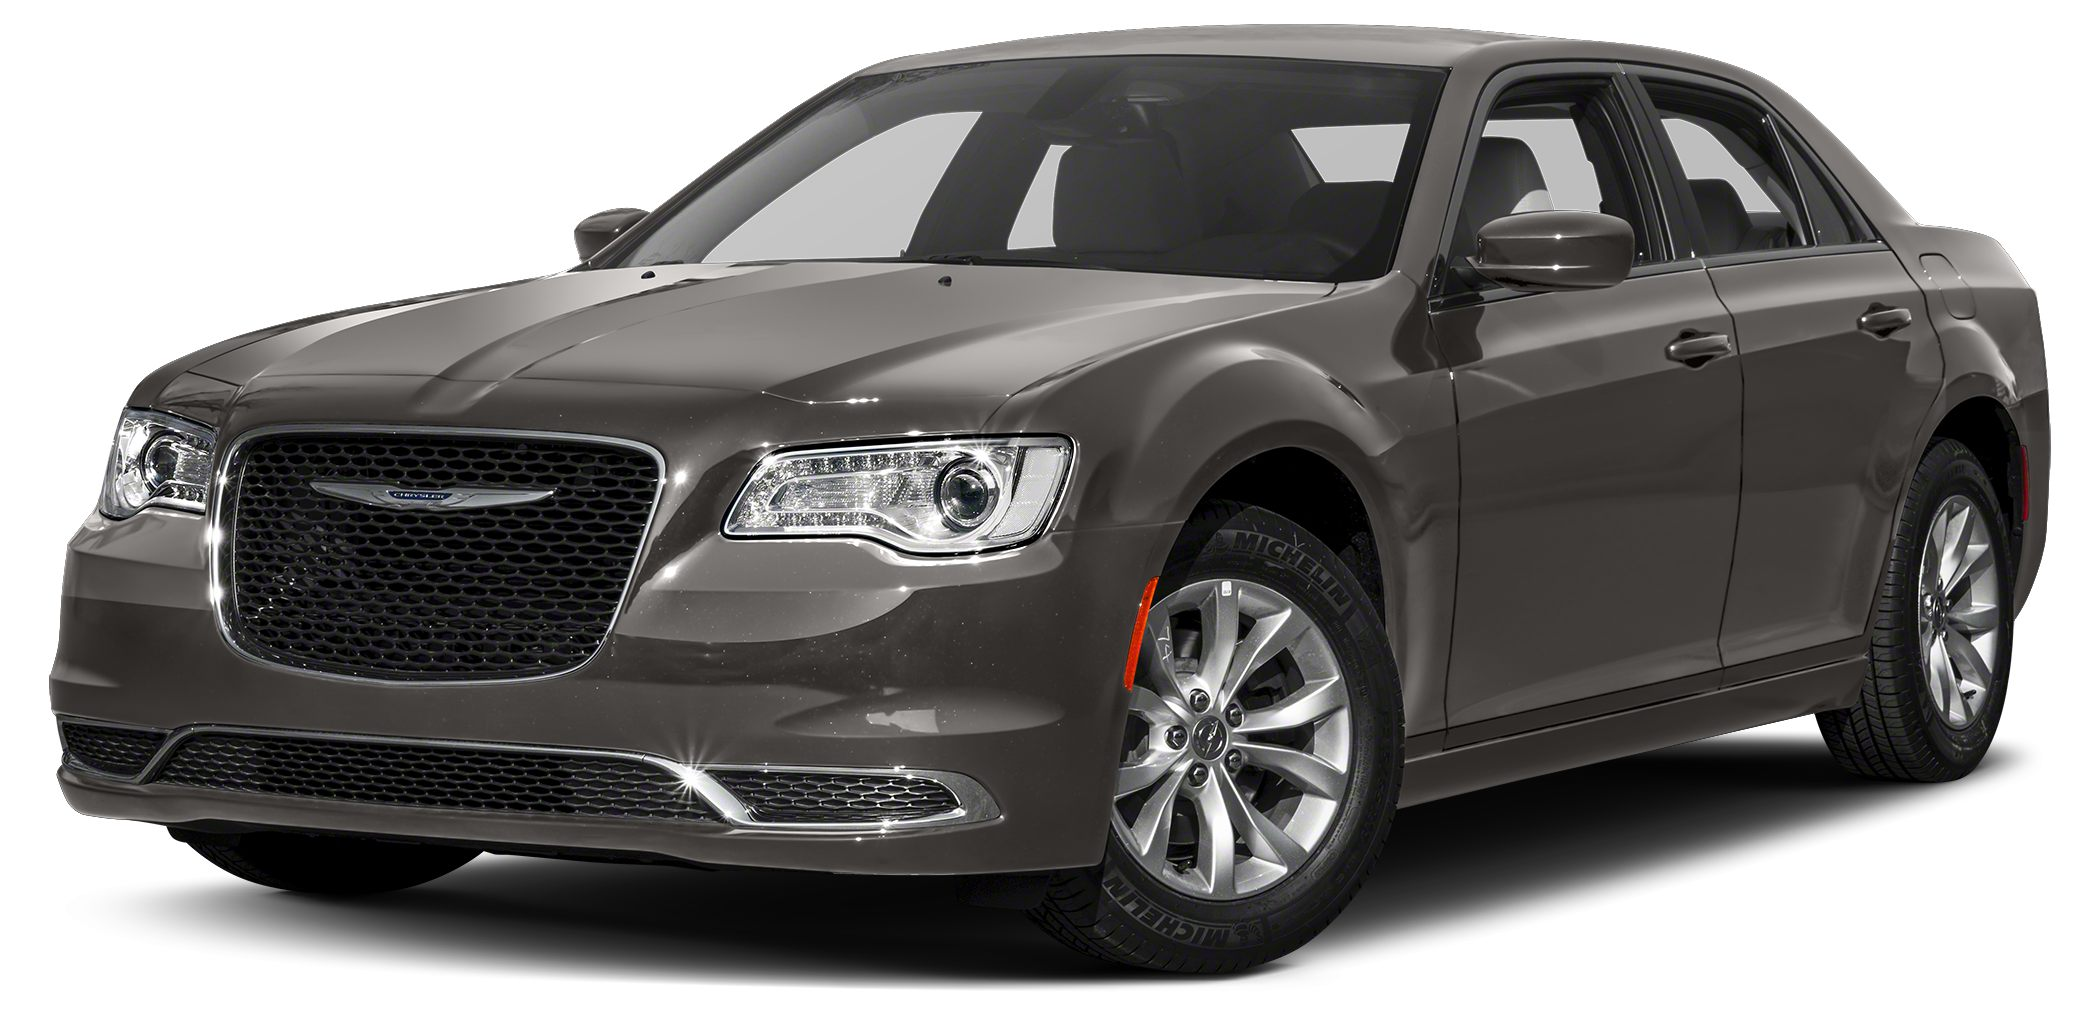 2015 Chrysler 300 S Miles 0Color Granite Crystal Clearcoat Metallic Stock C2718 VIN 2C3CCABG